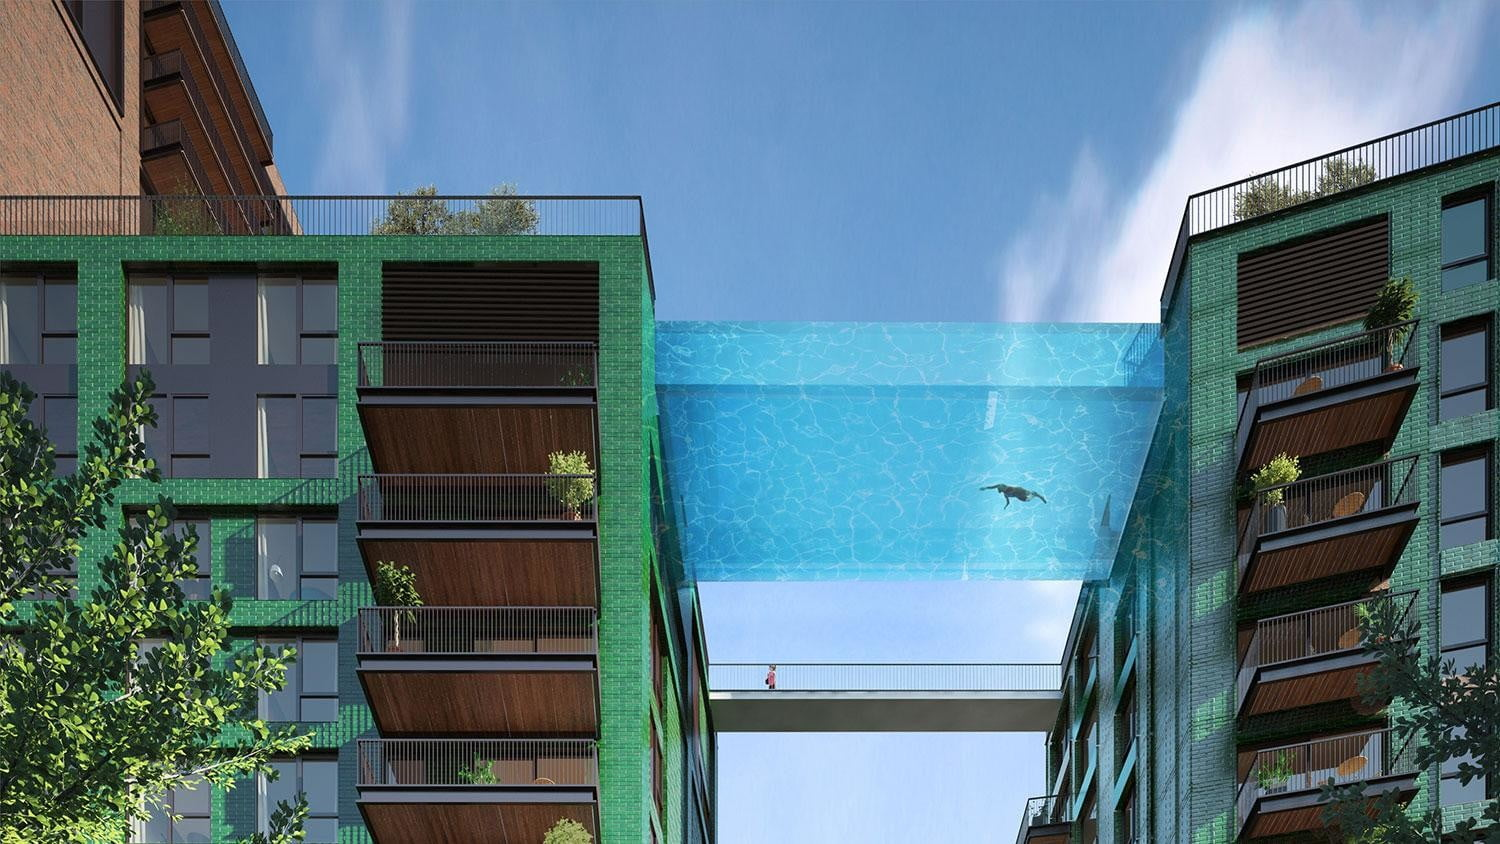 this swimming pool will be 100 feet in the air and join two buildings ballymore embassy gardens 21